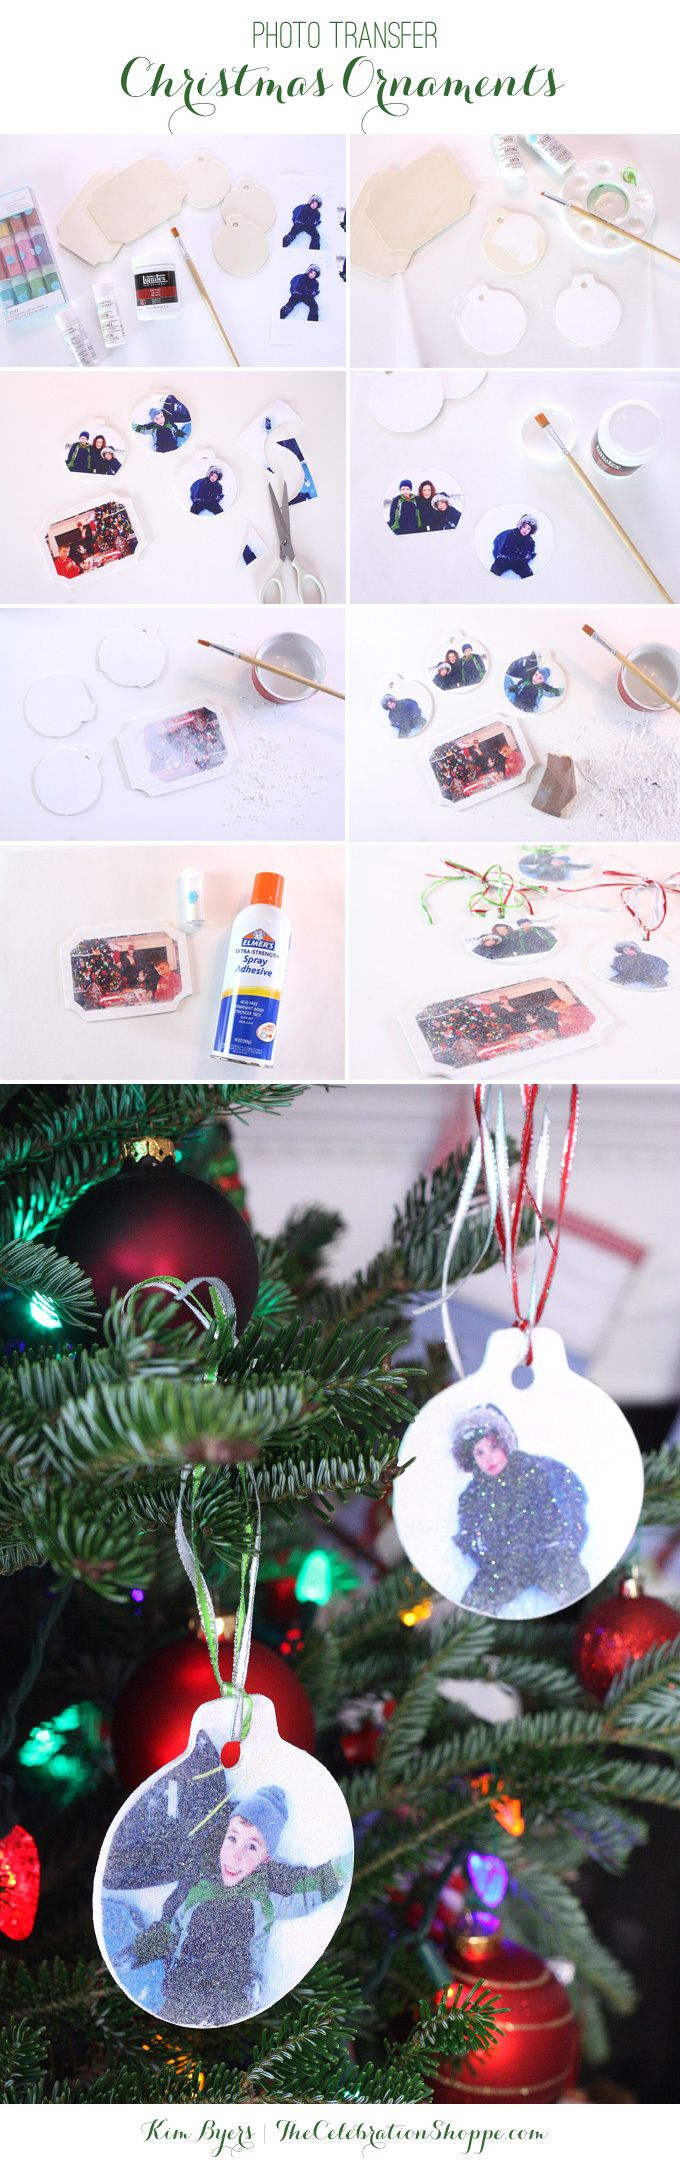 Make your own family ornaments using photos, wooden ornaments, Elmer's  spray adhesive, glitter, and a few other simple craft supplies.